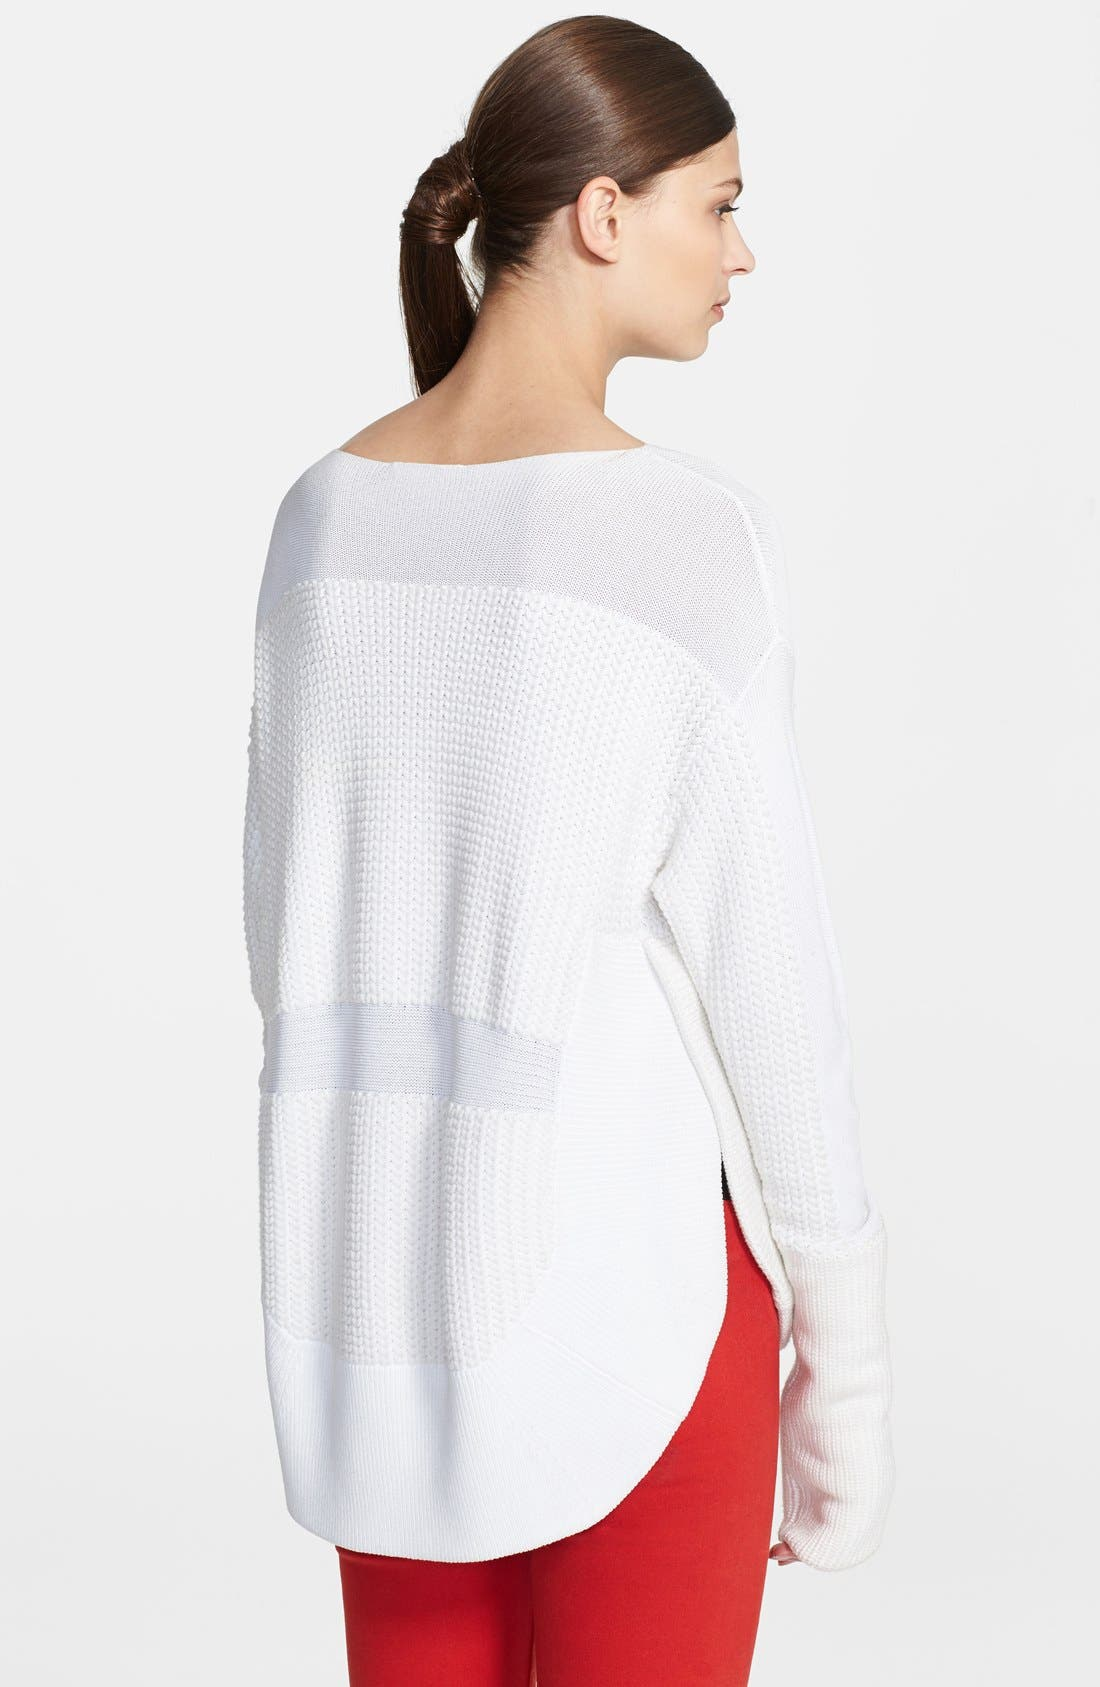 HELMUT LANG, Textured Inlay Sweater, Alternate thumbnail 4, color, 157